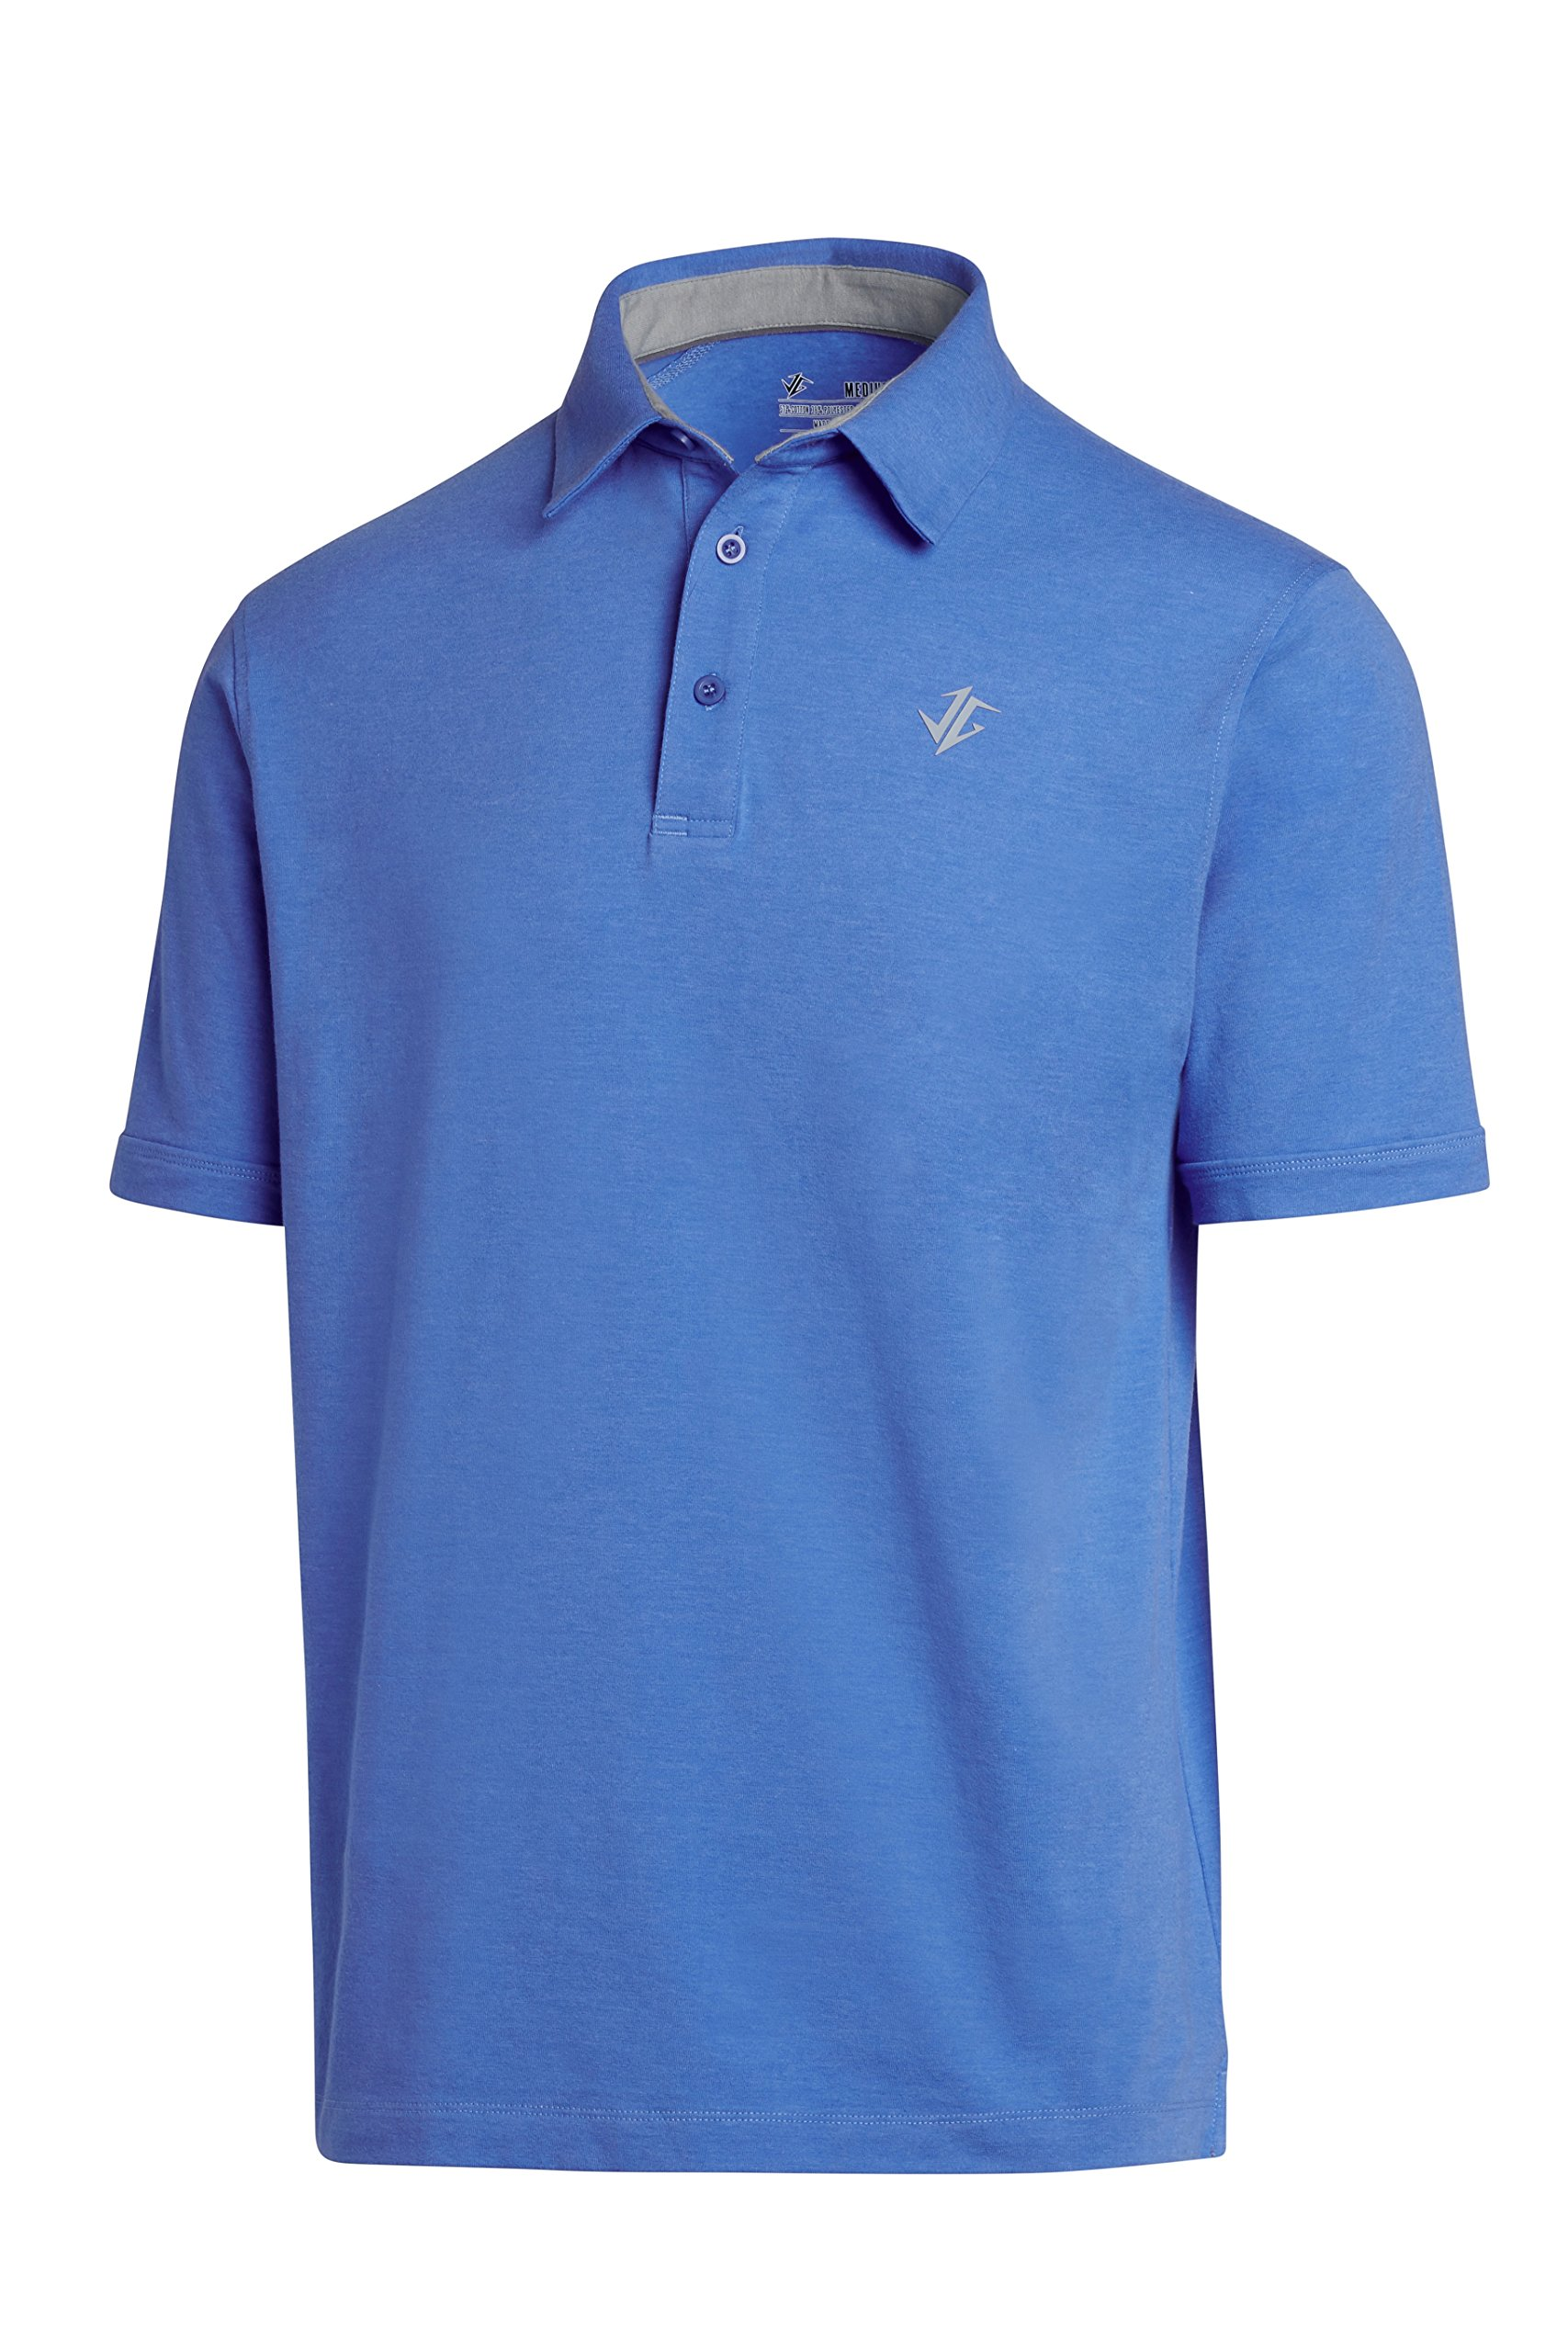 Jolt Gear Golf Shirts Men - Dry Fit Cotton Polo Shirt - Includes 20 Golfing Tees